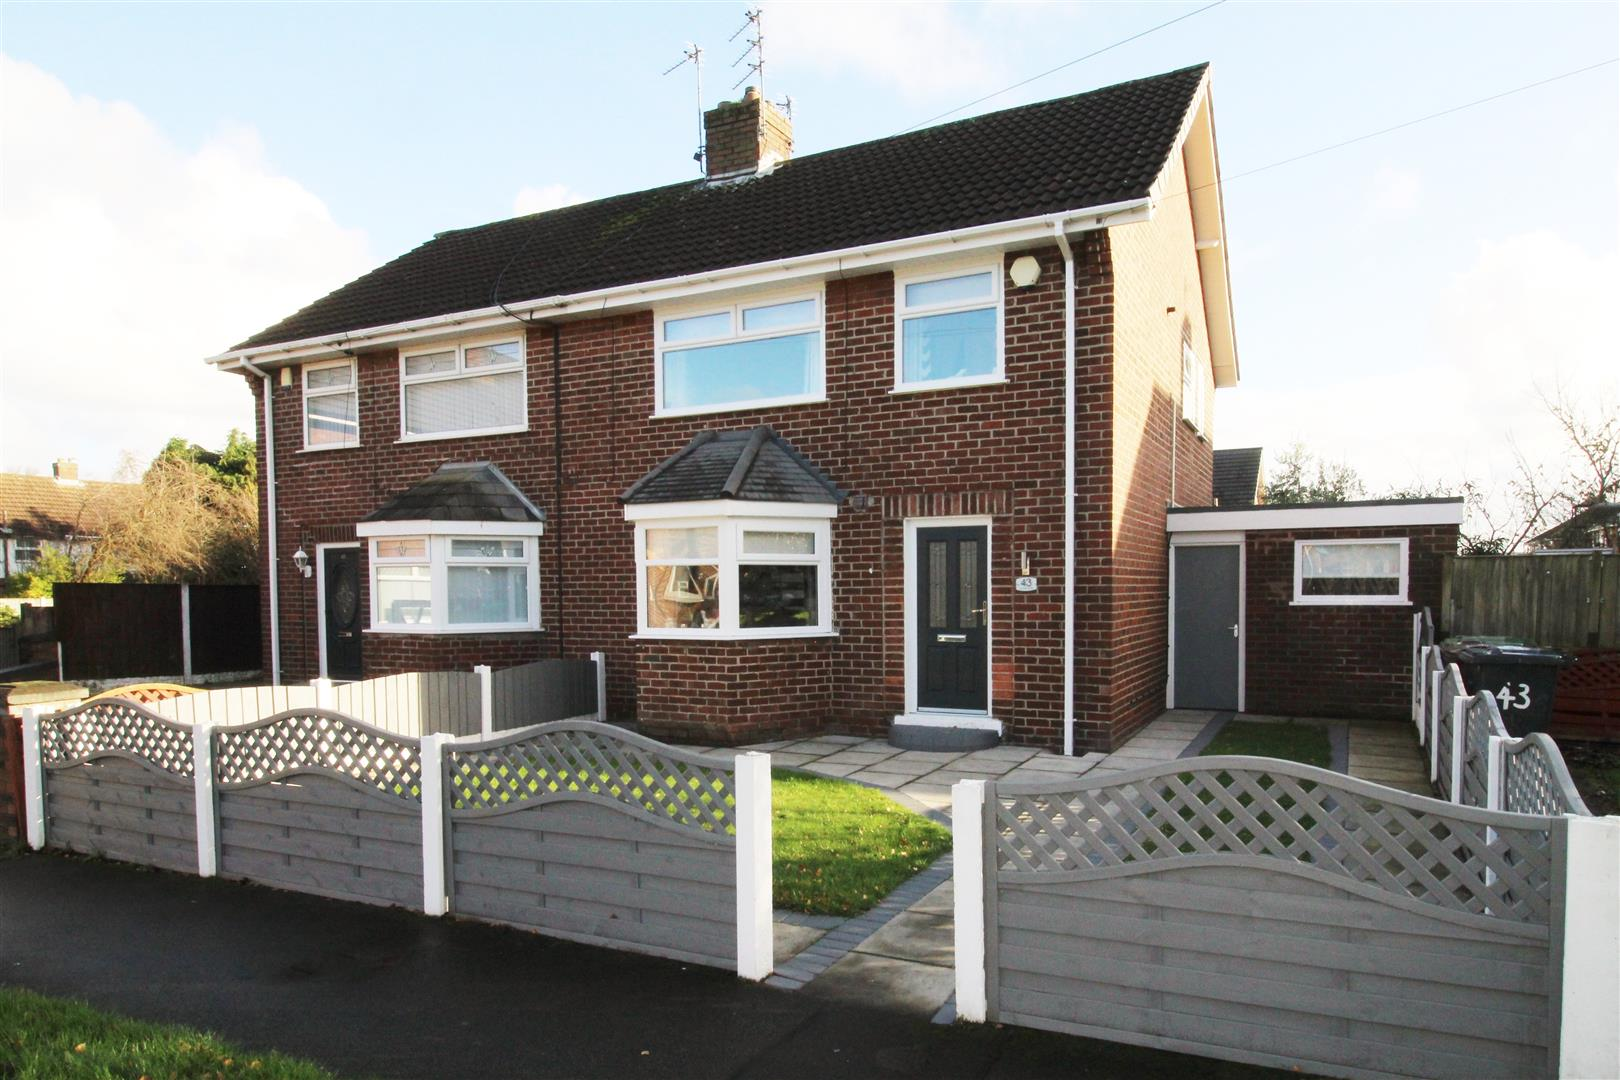 3 Bedrooms, House - Semi-Detached, Lincoln Drive, Aintree